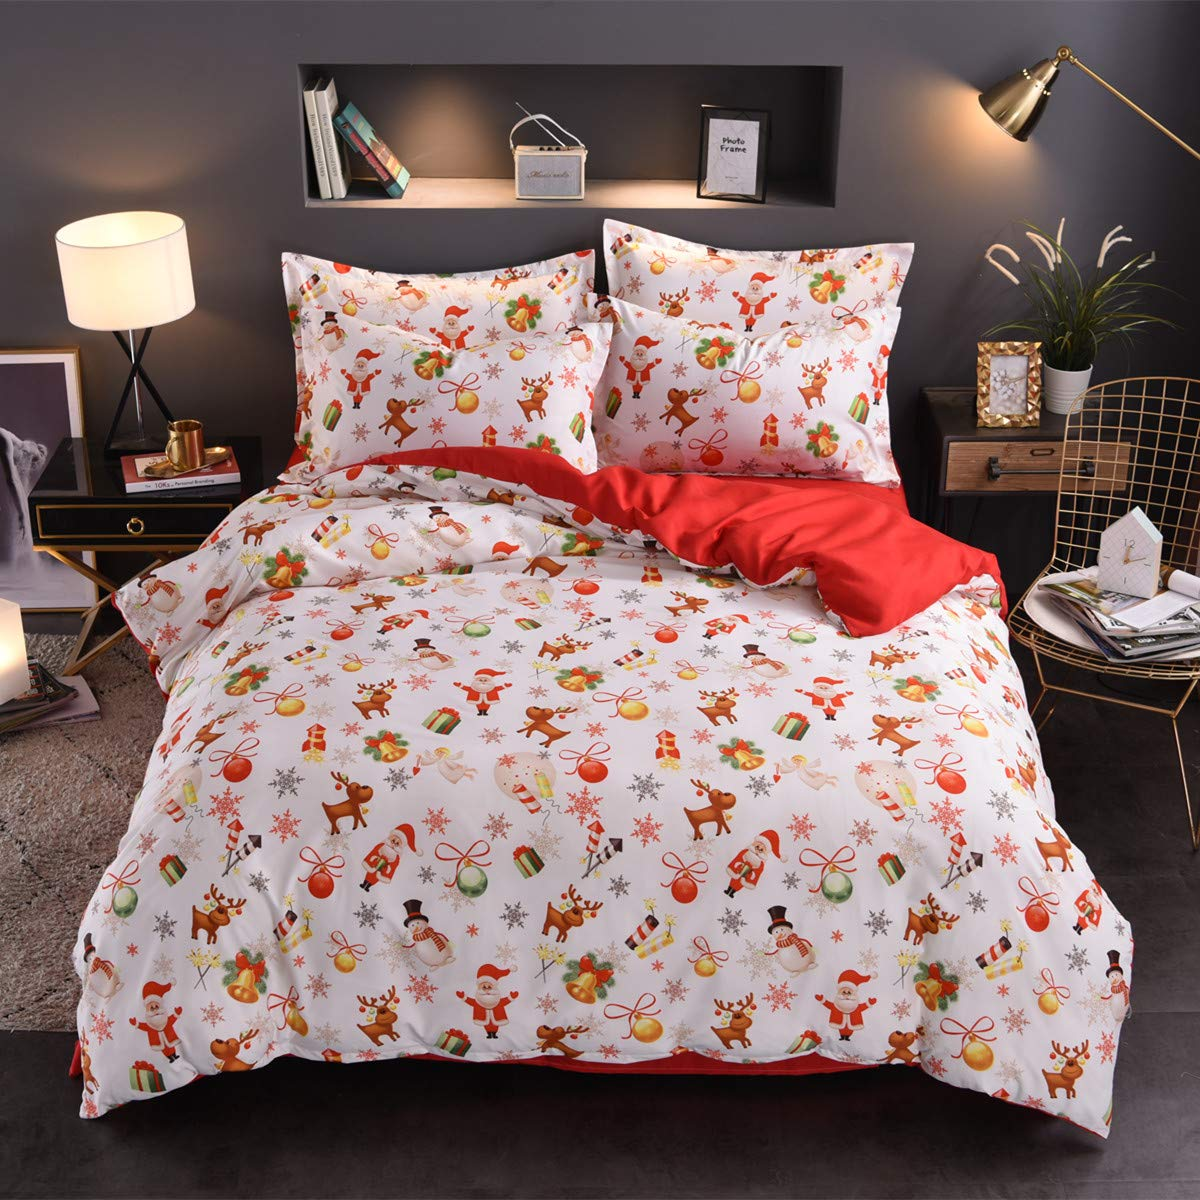 Argstar 2 Pcs Christmas Duvet Cover Twin Size, Satus Claus Deer Bell Present and Snowman Pattern Bedding Set